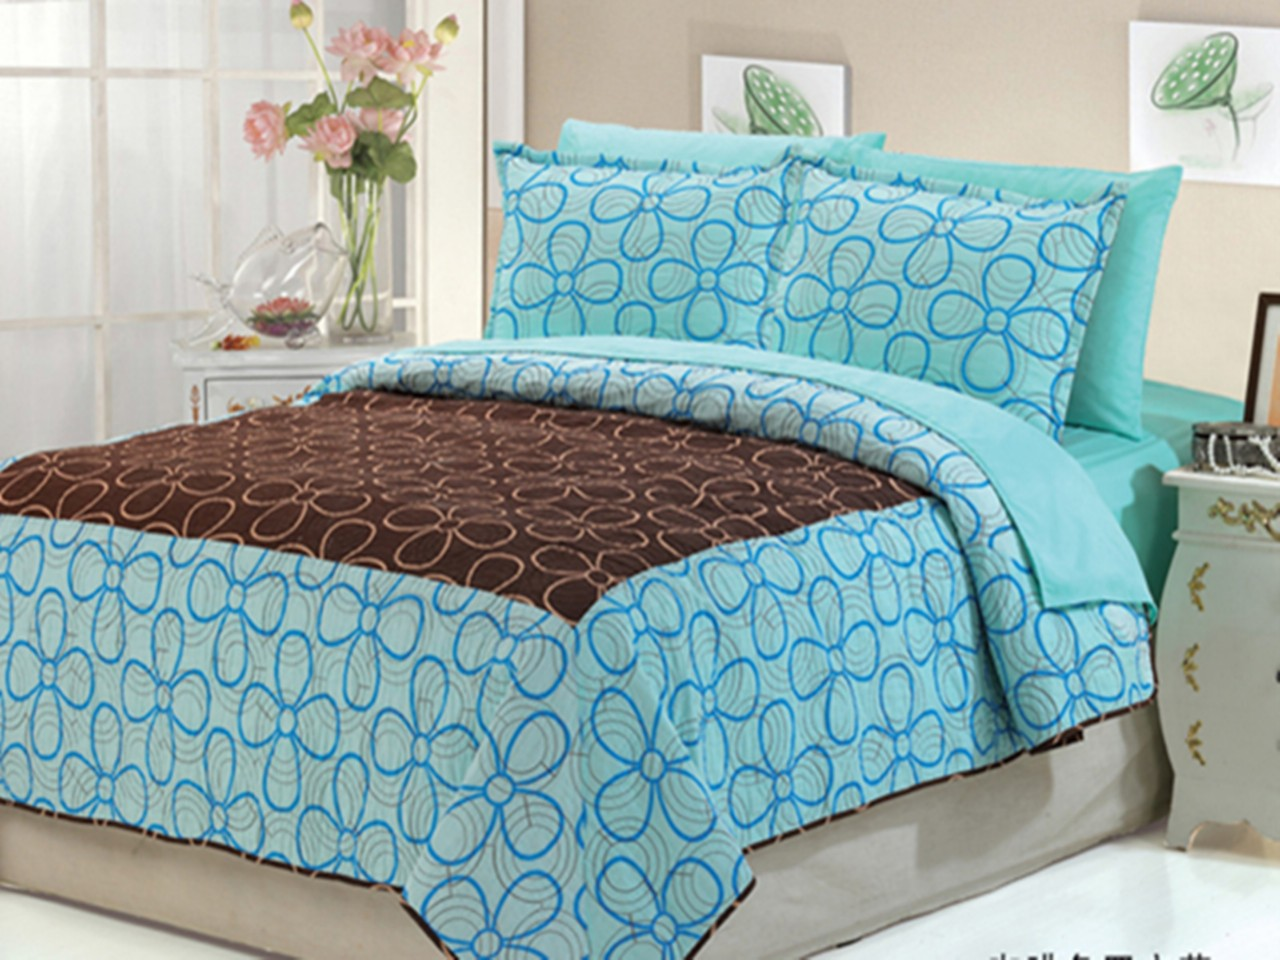 Home amp garden gt bedding gt comforters amp sets gt see more 7 pc faux fur - 7pc Leopard Bedspread Dasiy Dream Coffee